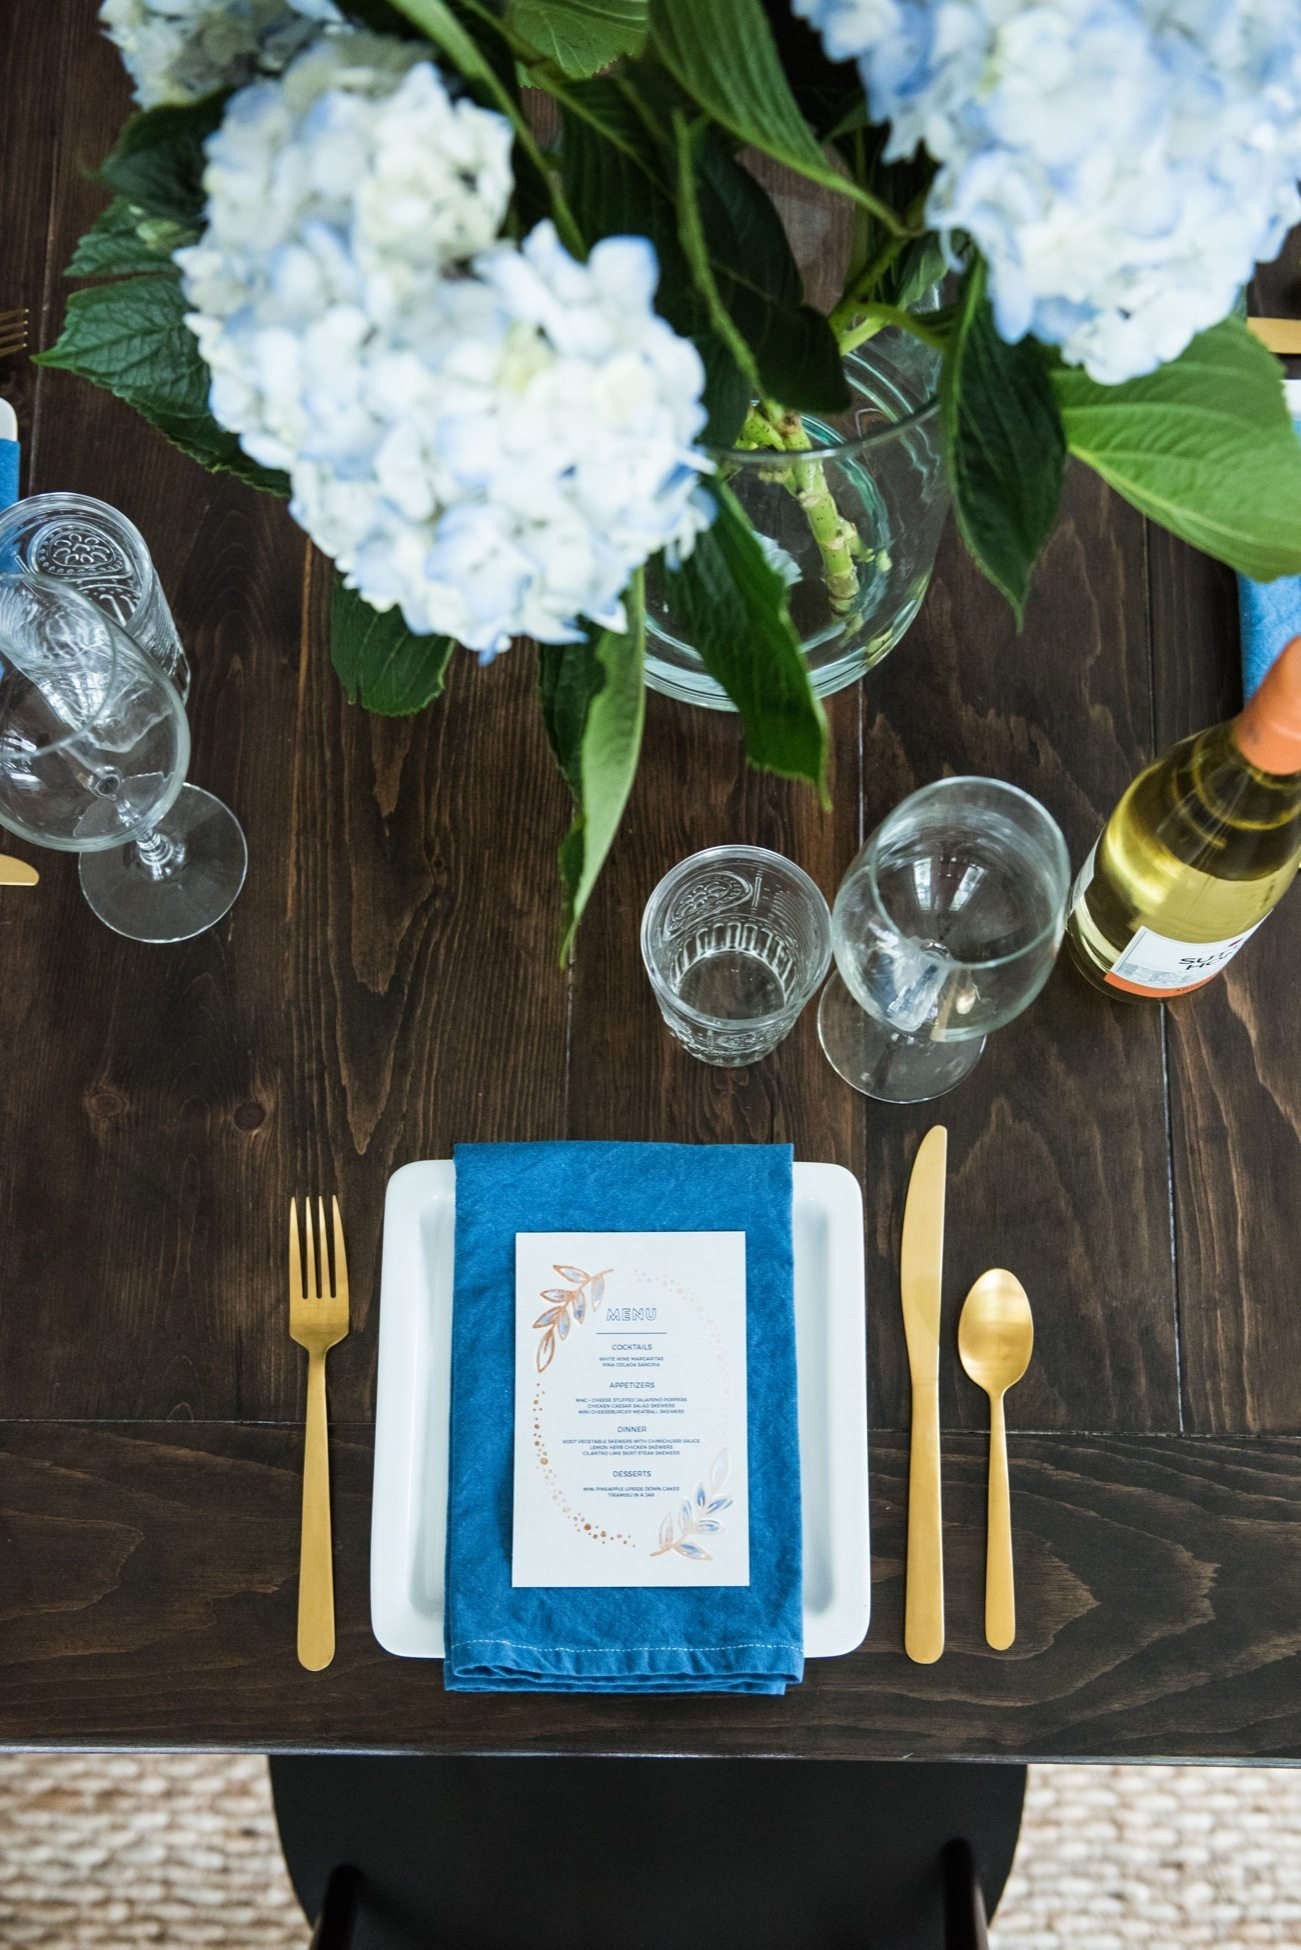 The Ultimate Backyard Dinner Party with Sutter Home and @cydconverse | Entertaining ideas, dinner party tips, party ideas and more!